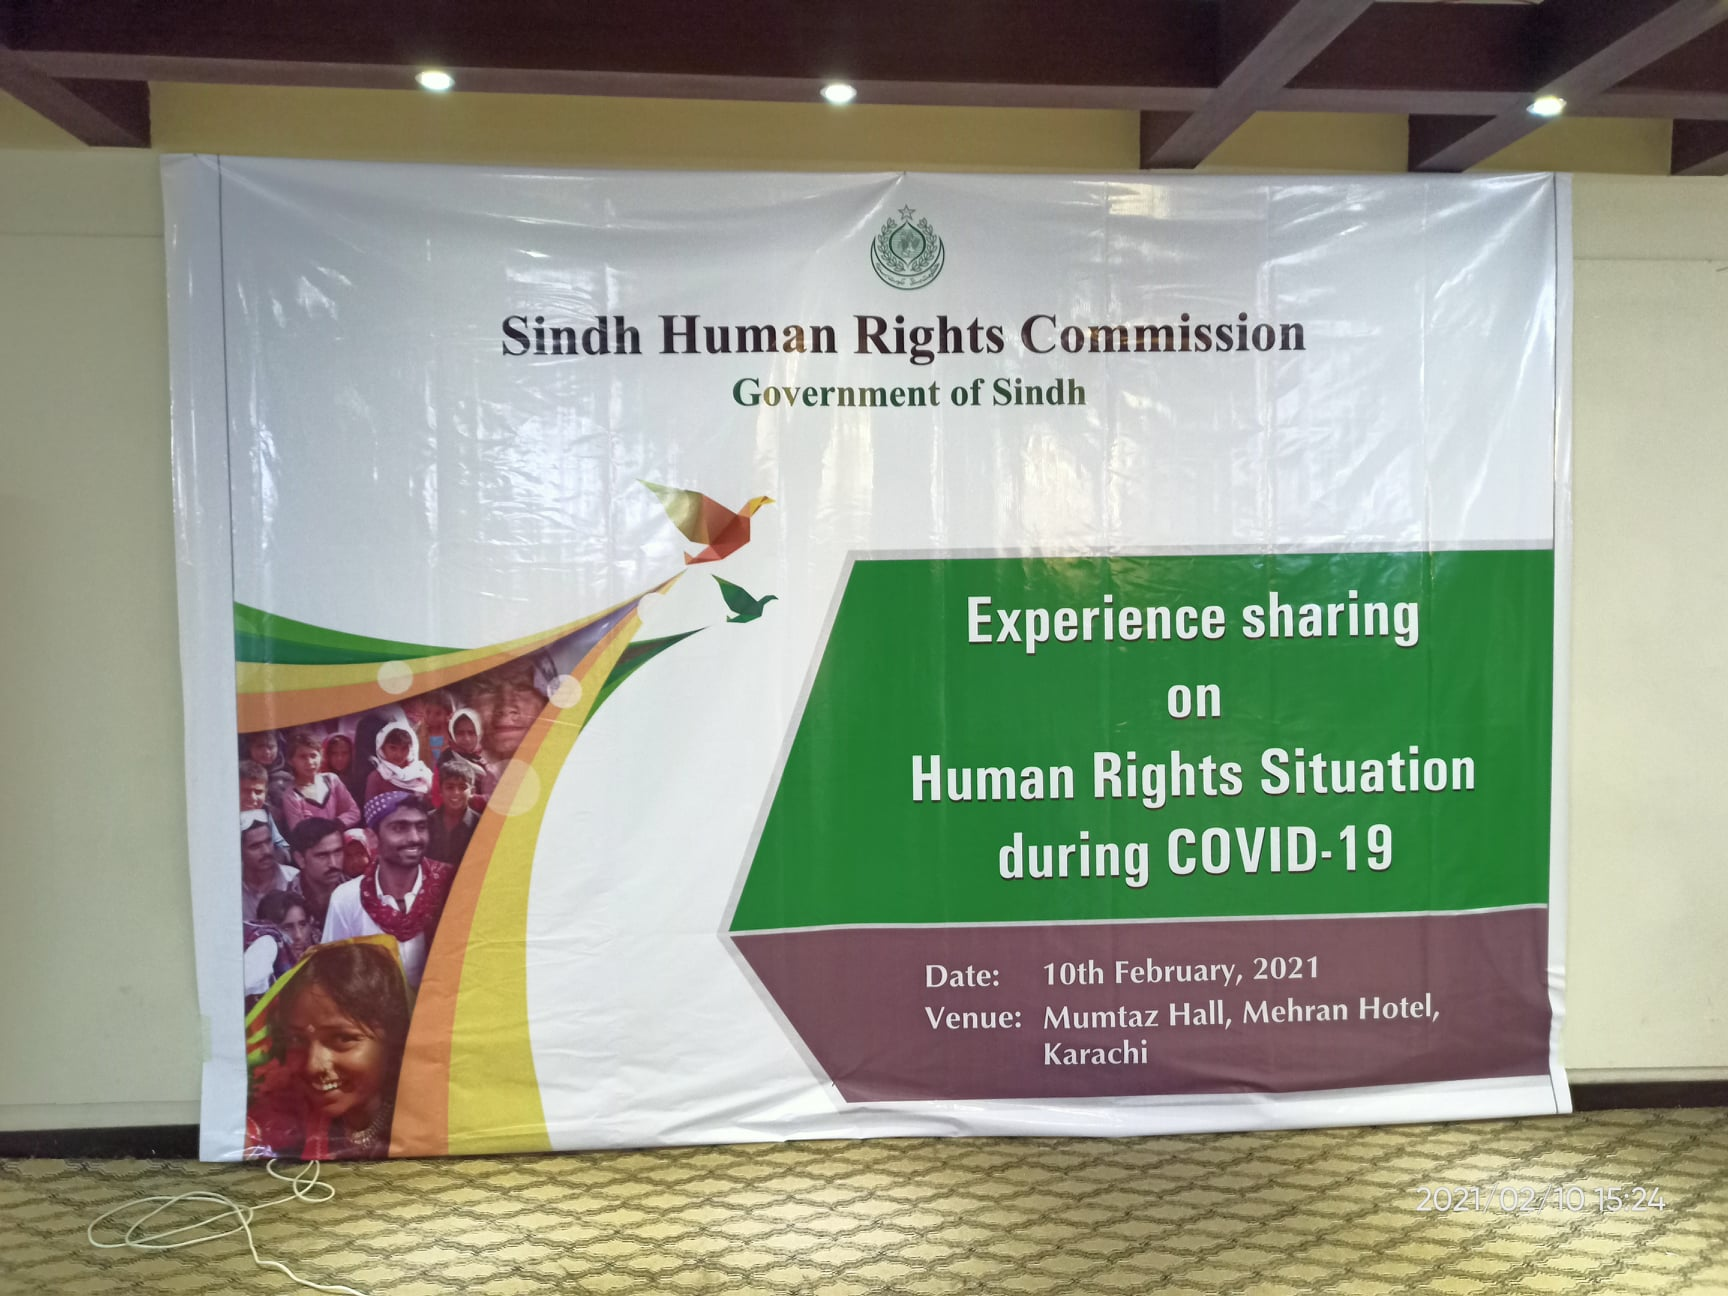 Experience Sharing on Human Rights Situation during COVID-19